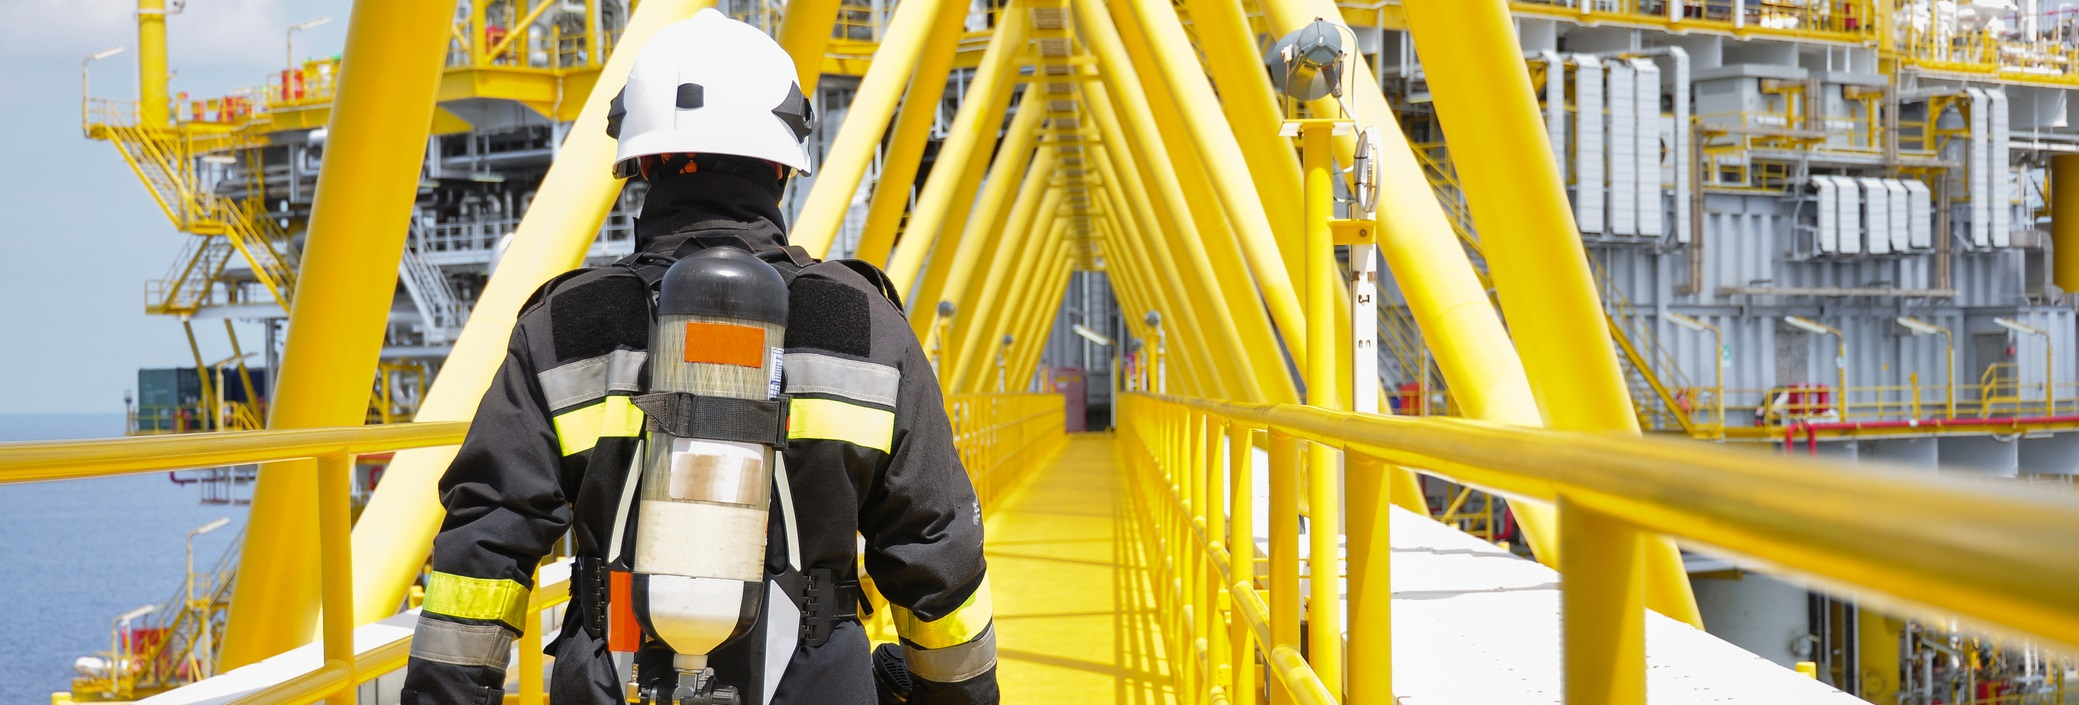 hse culture in oil industry To transform the offshore oil and gas industry's safety culture of sciences, engineering, and medicine national academies of sciences, engineering.